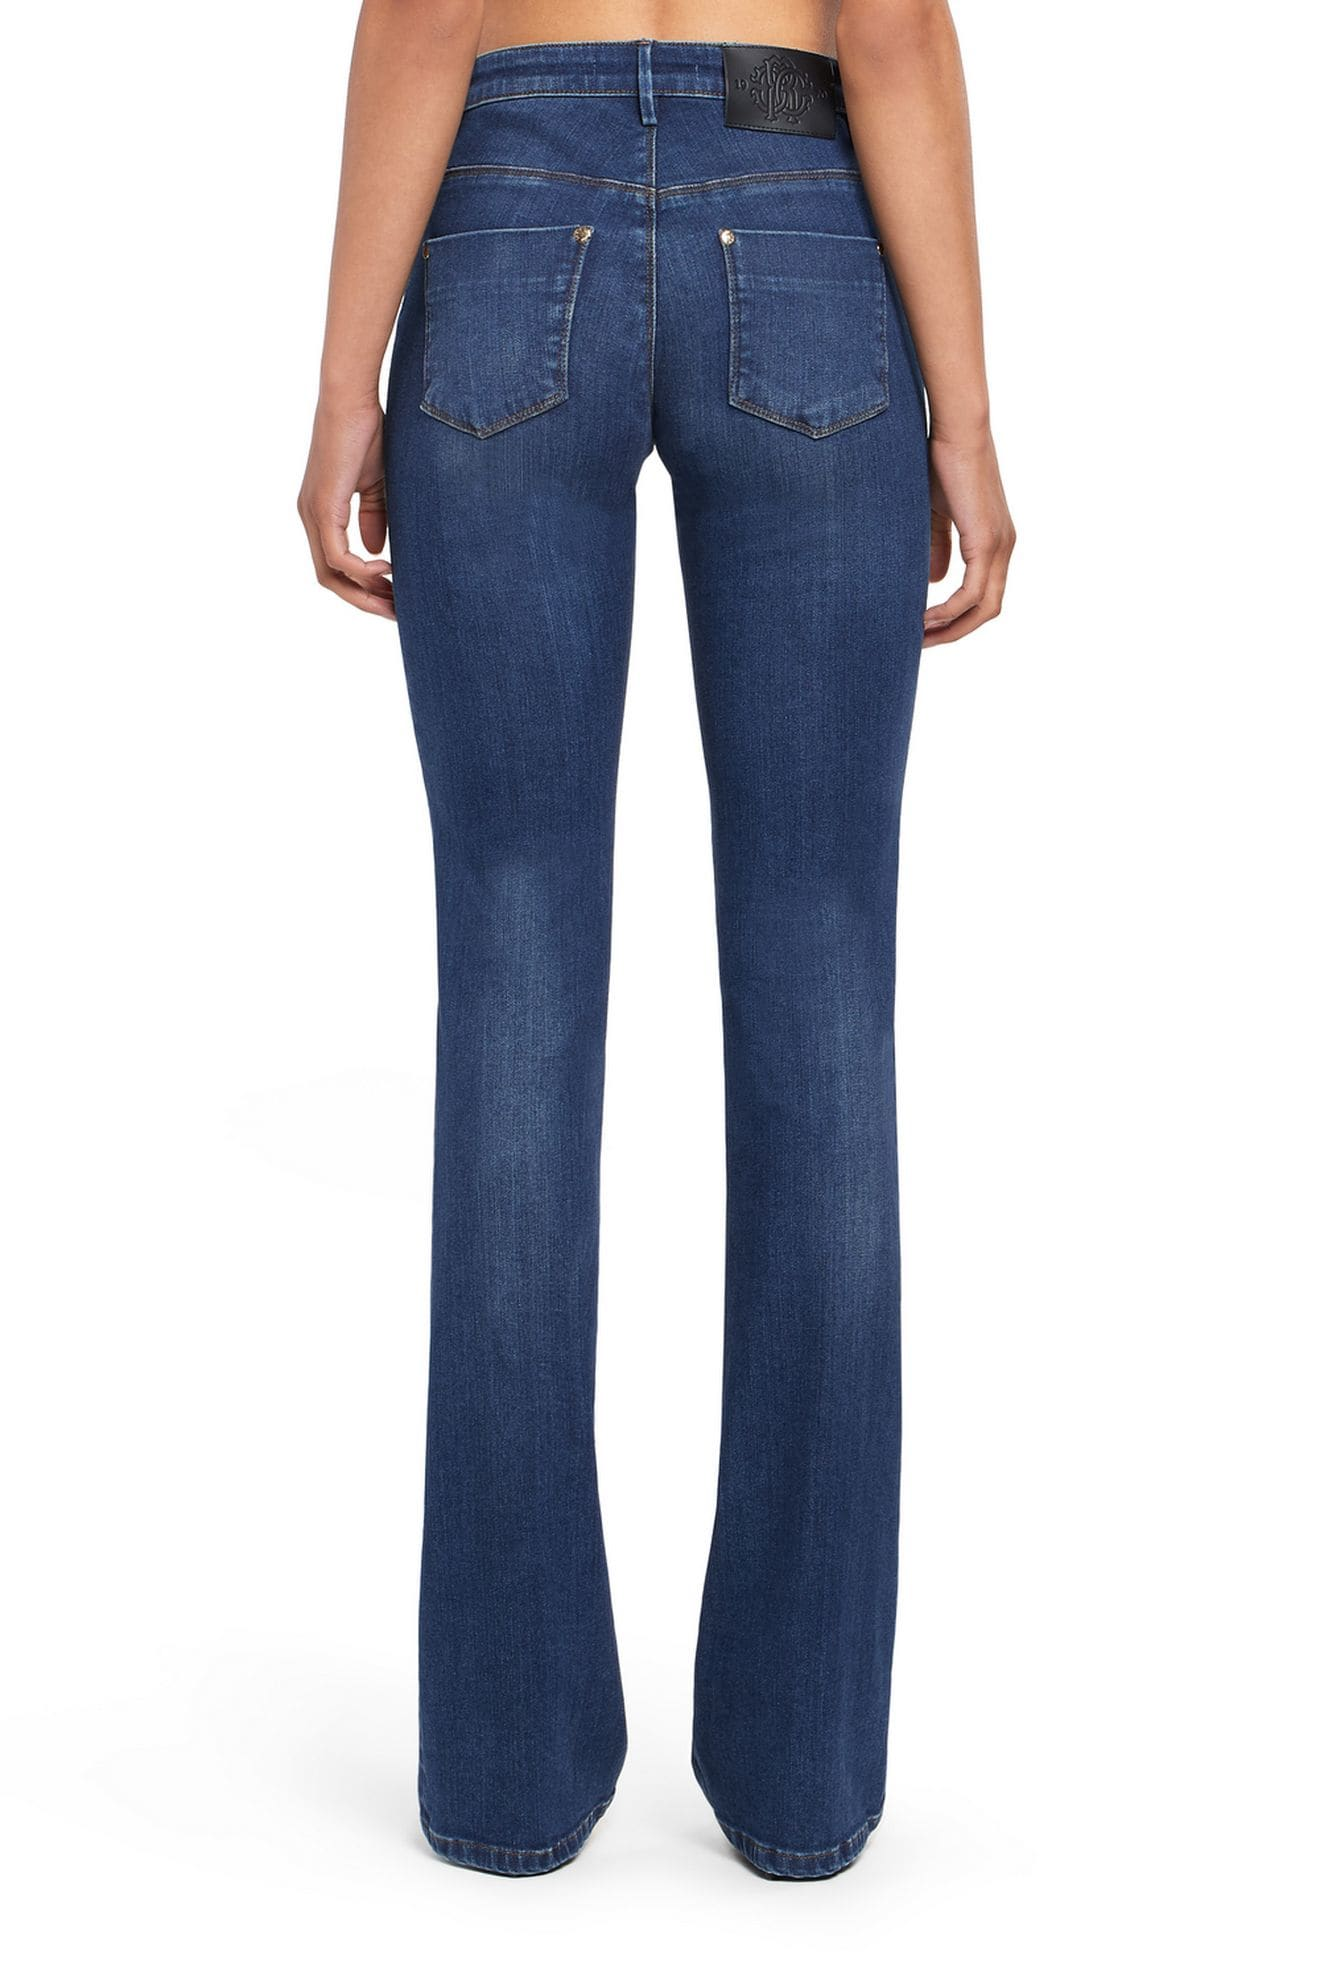 roberto-cavalli-blue-flared-jeans_13150667_15611958_1320